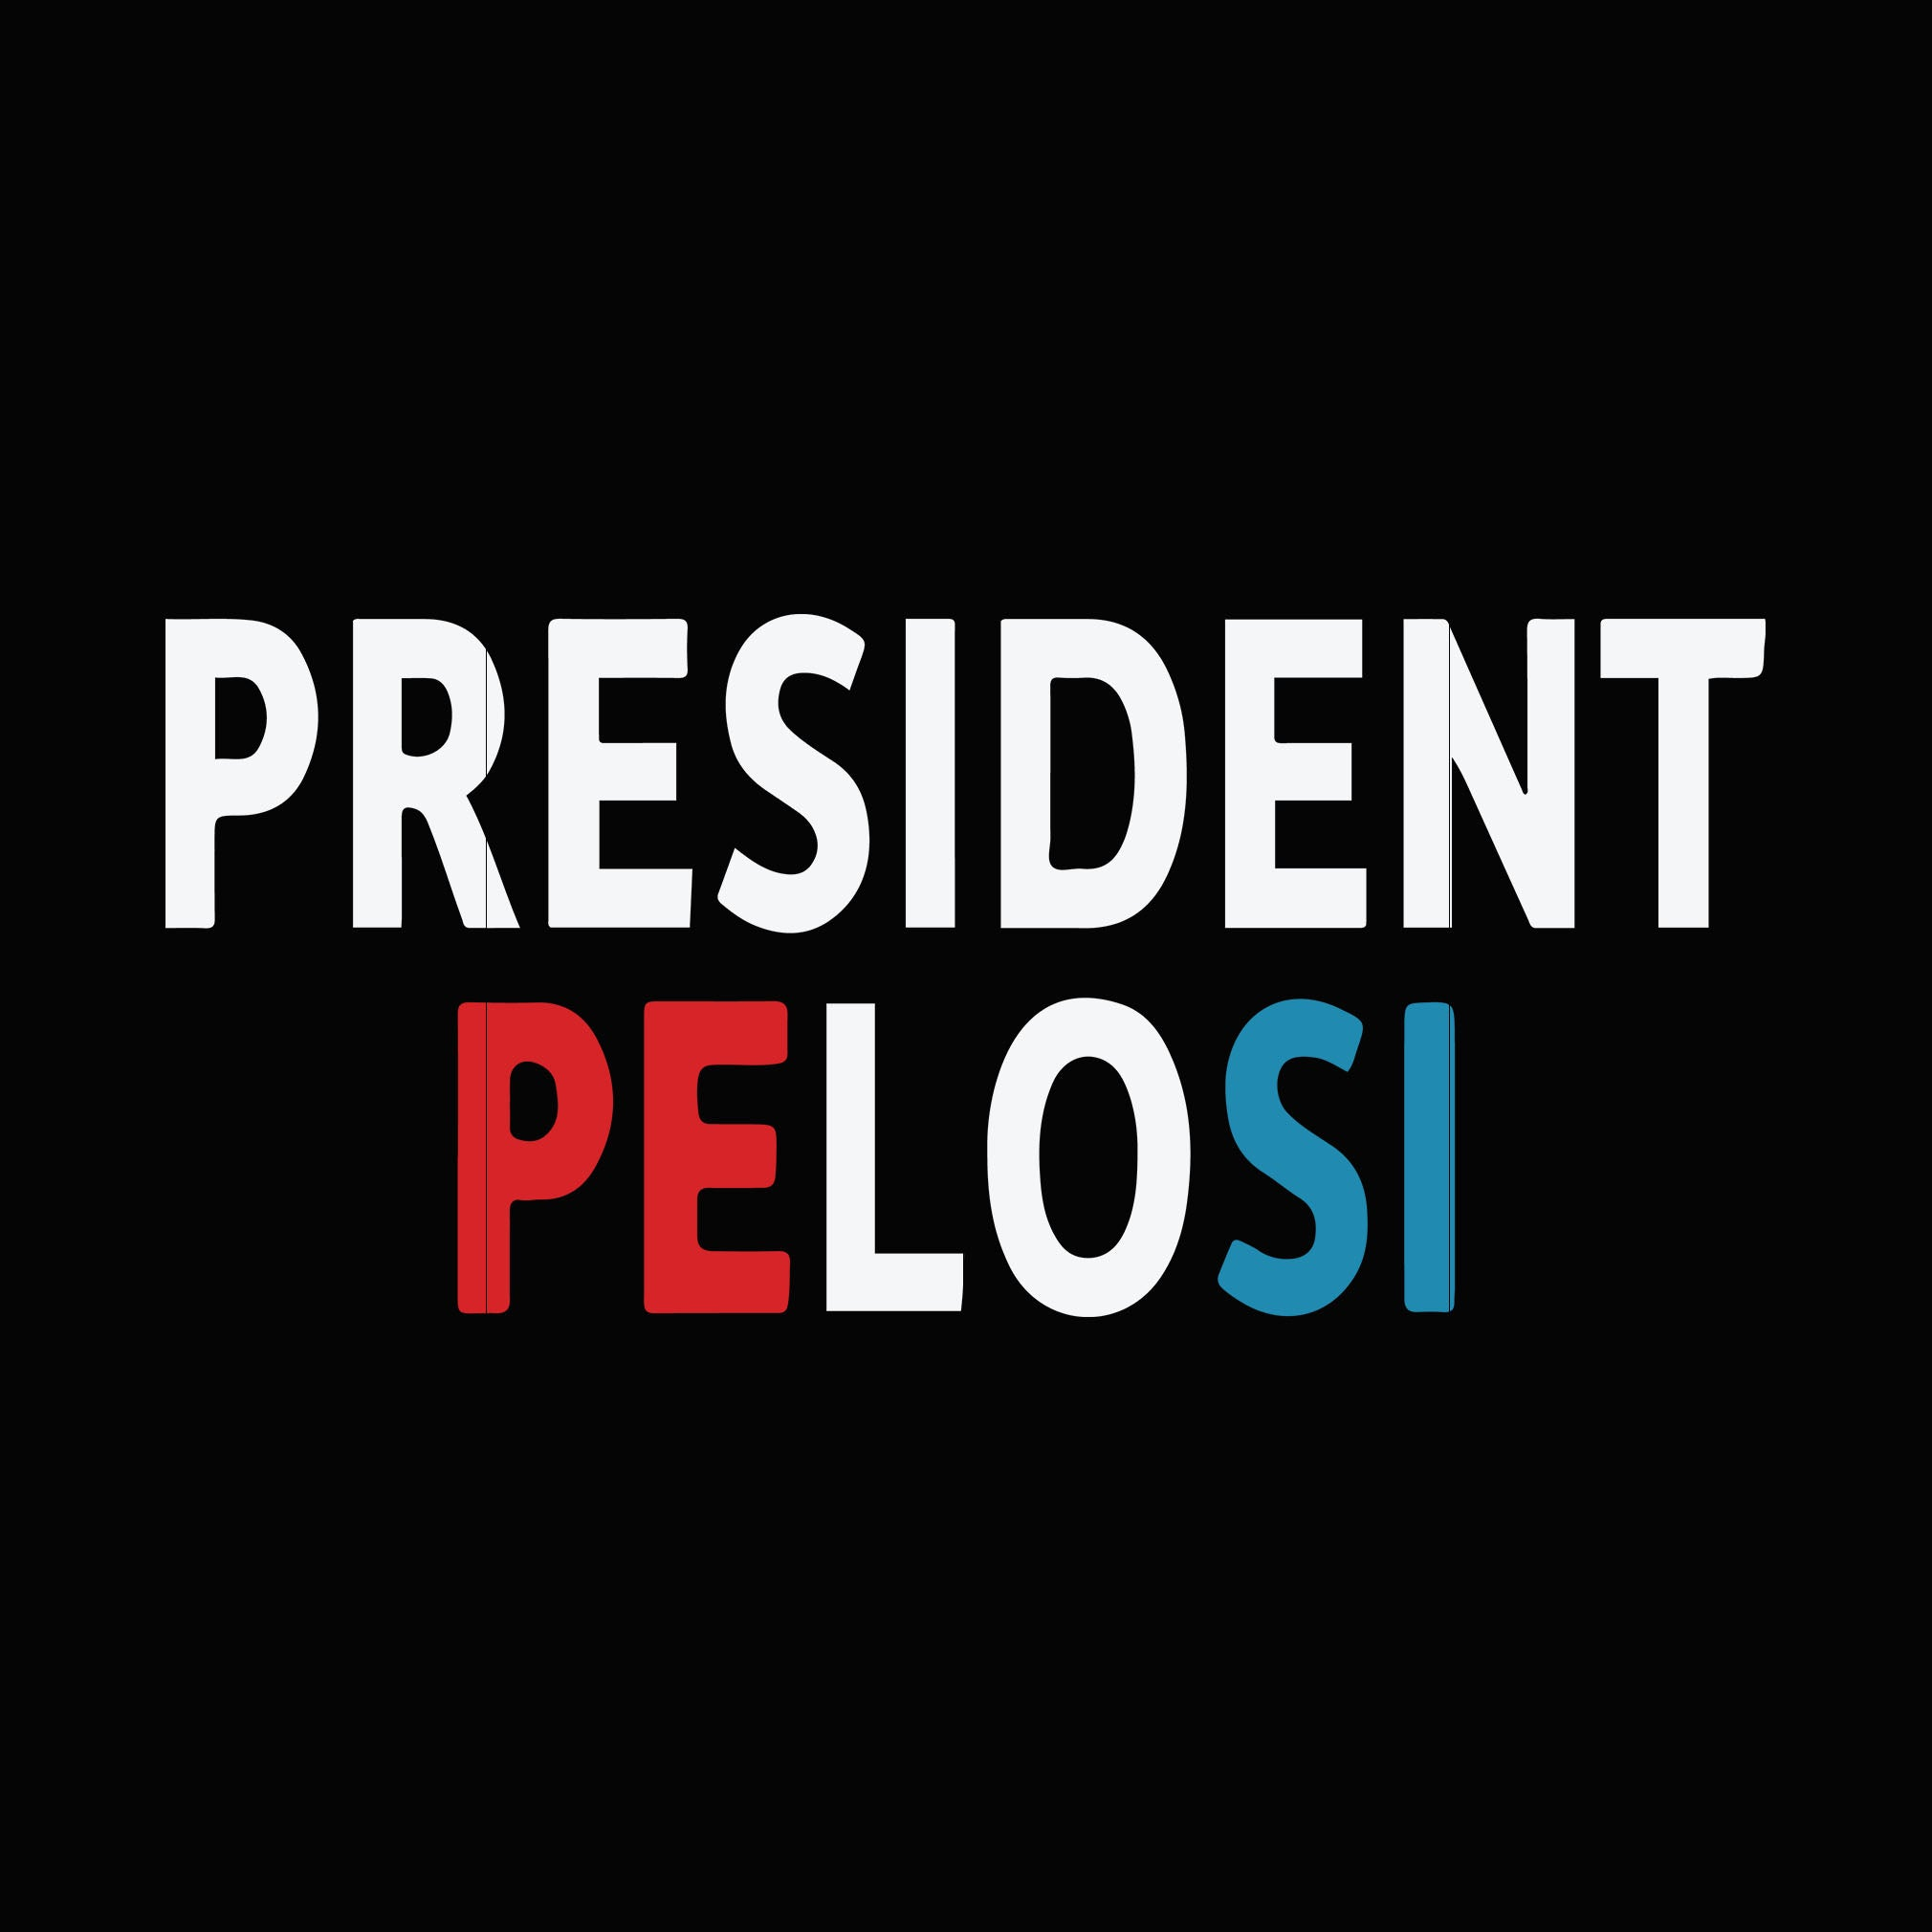 President pelosi svg ,dxf,eps,png digital file